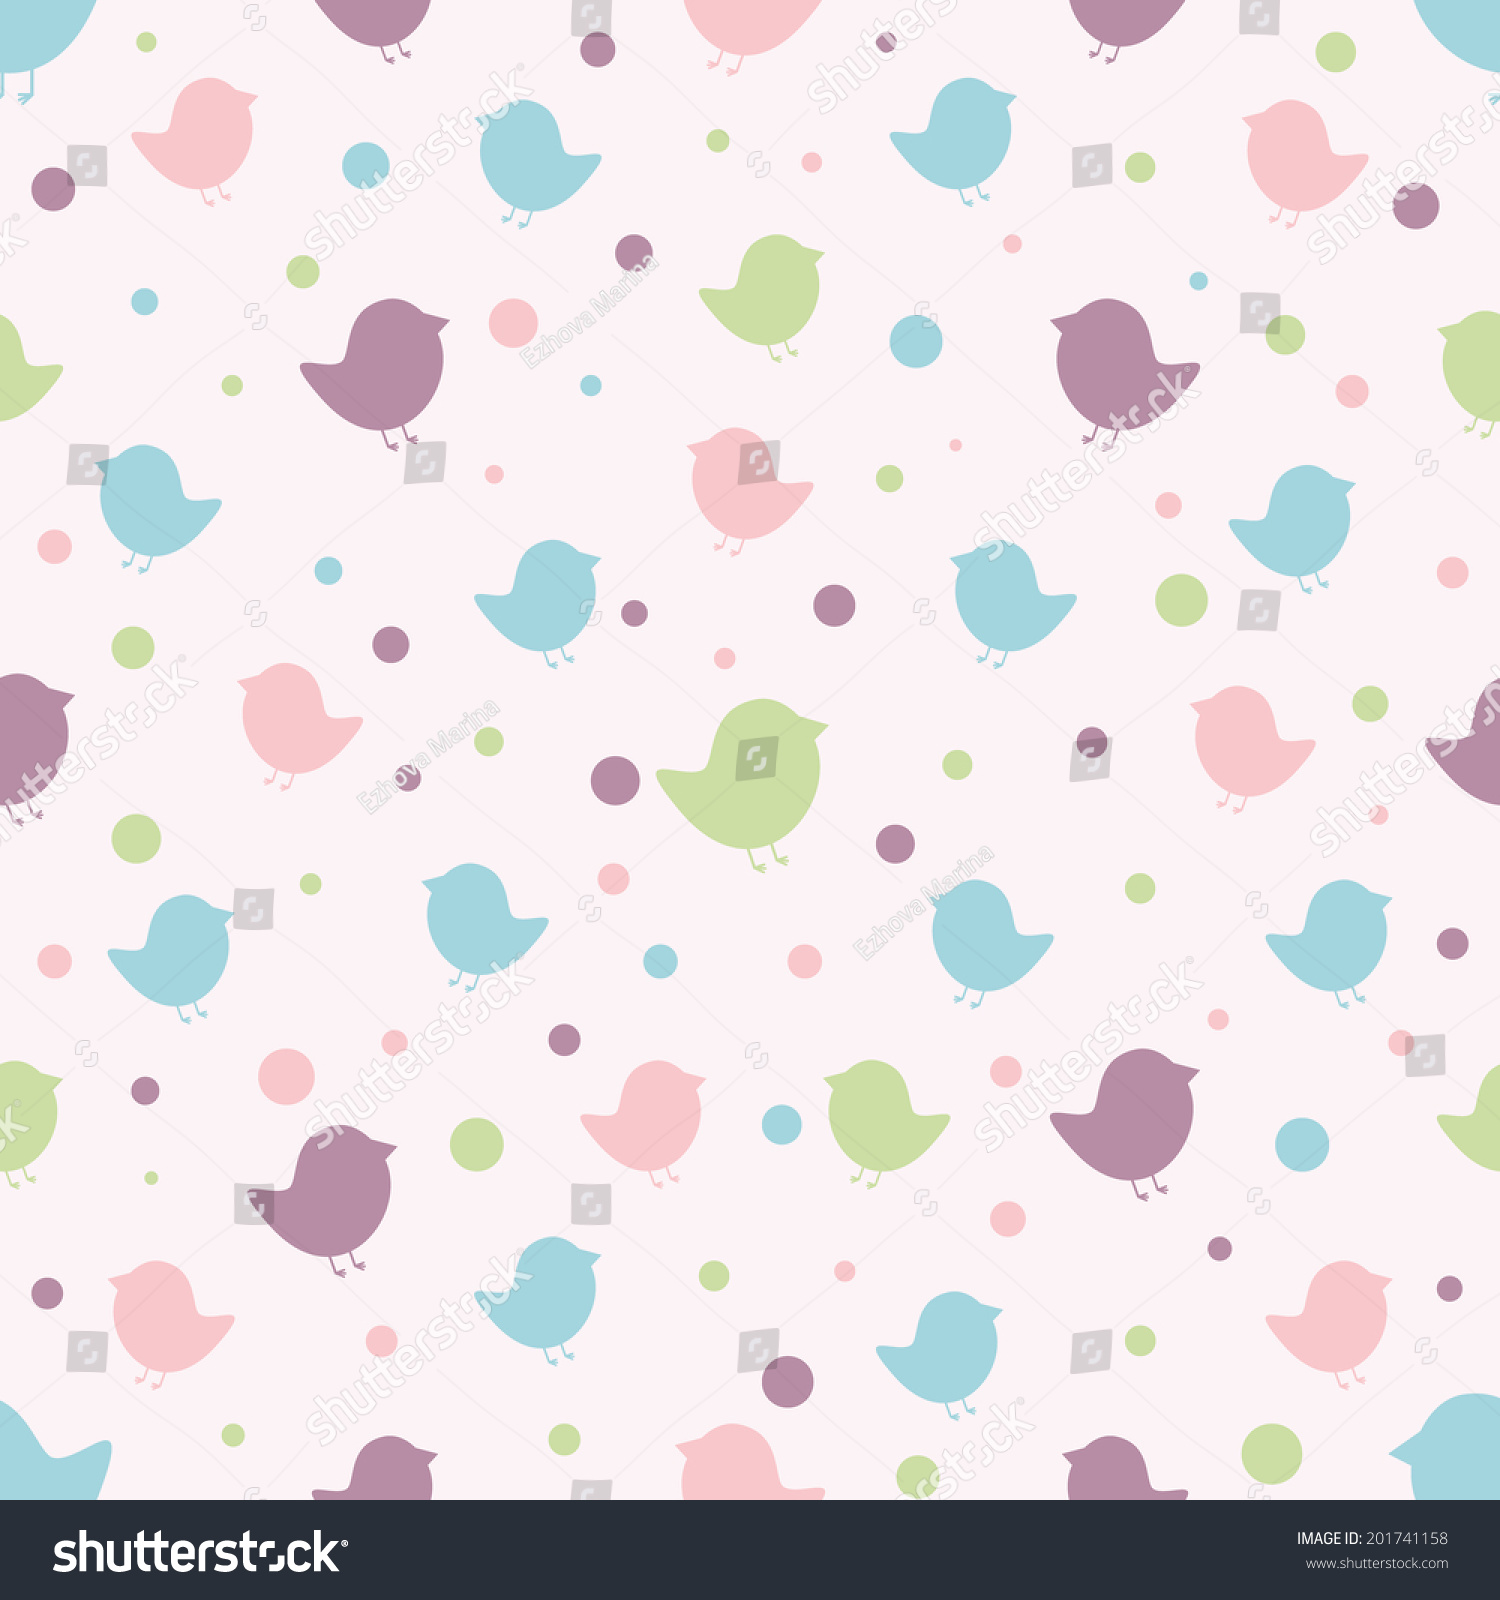 Scrapbook paper baby - Baby Background With Silhouettes Birds And Circles Paper For Scrapbook Or Background